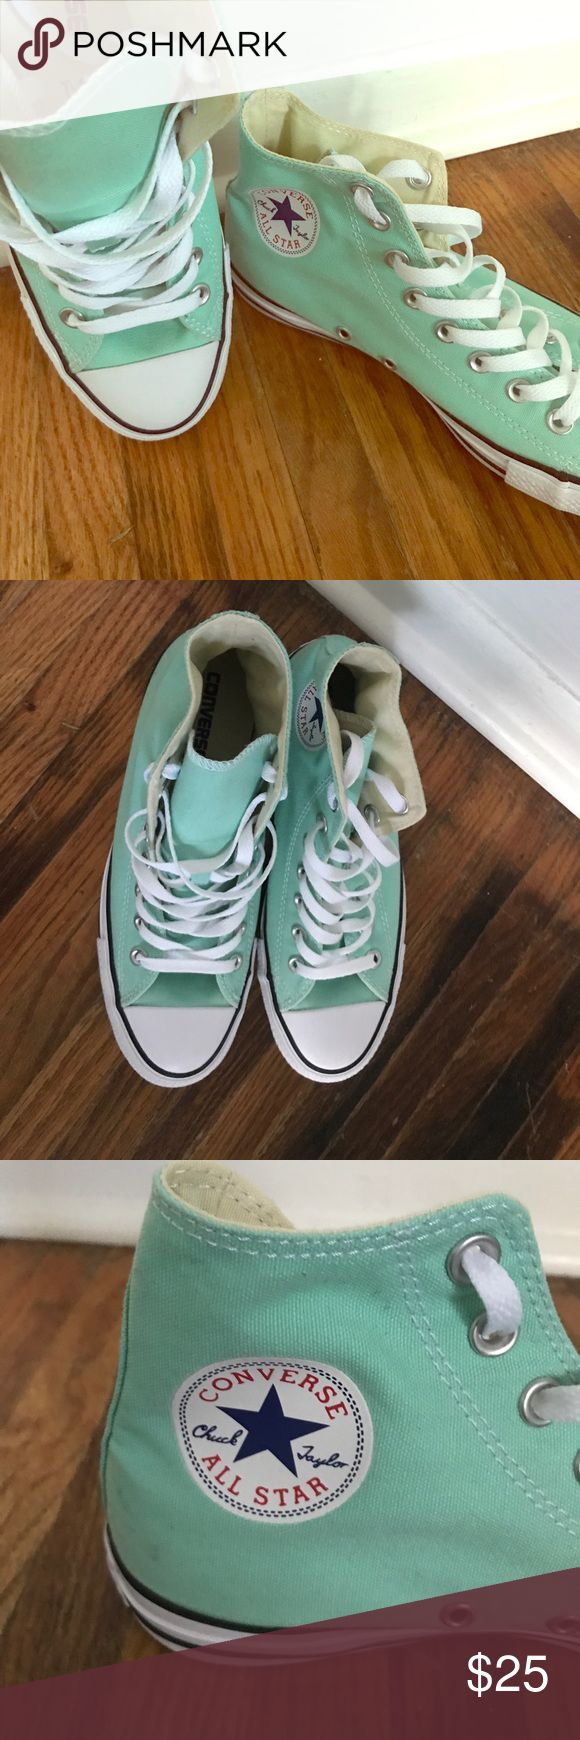 Teal Converse All Star (brand new) Women's 9/men's 7 Teal Converse All Star high tops. Brand new. Never worn (gift, didn't fit). No scuffs or wear. Converse Shoes Sneakers